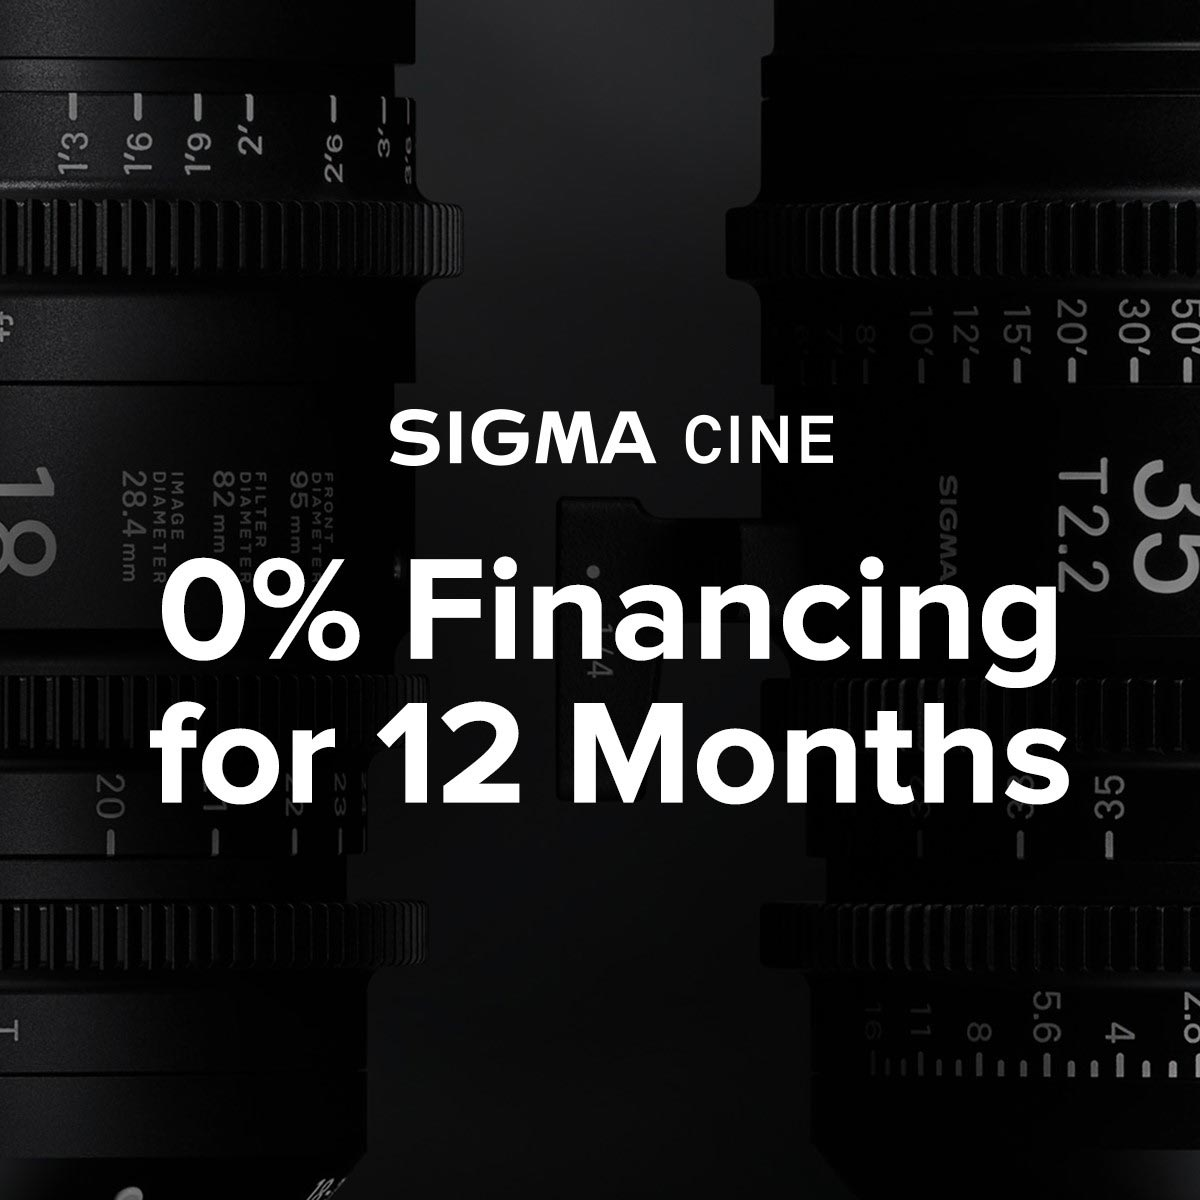 Get your Cine lenses during Sigma's Black Friday